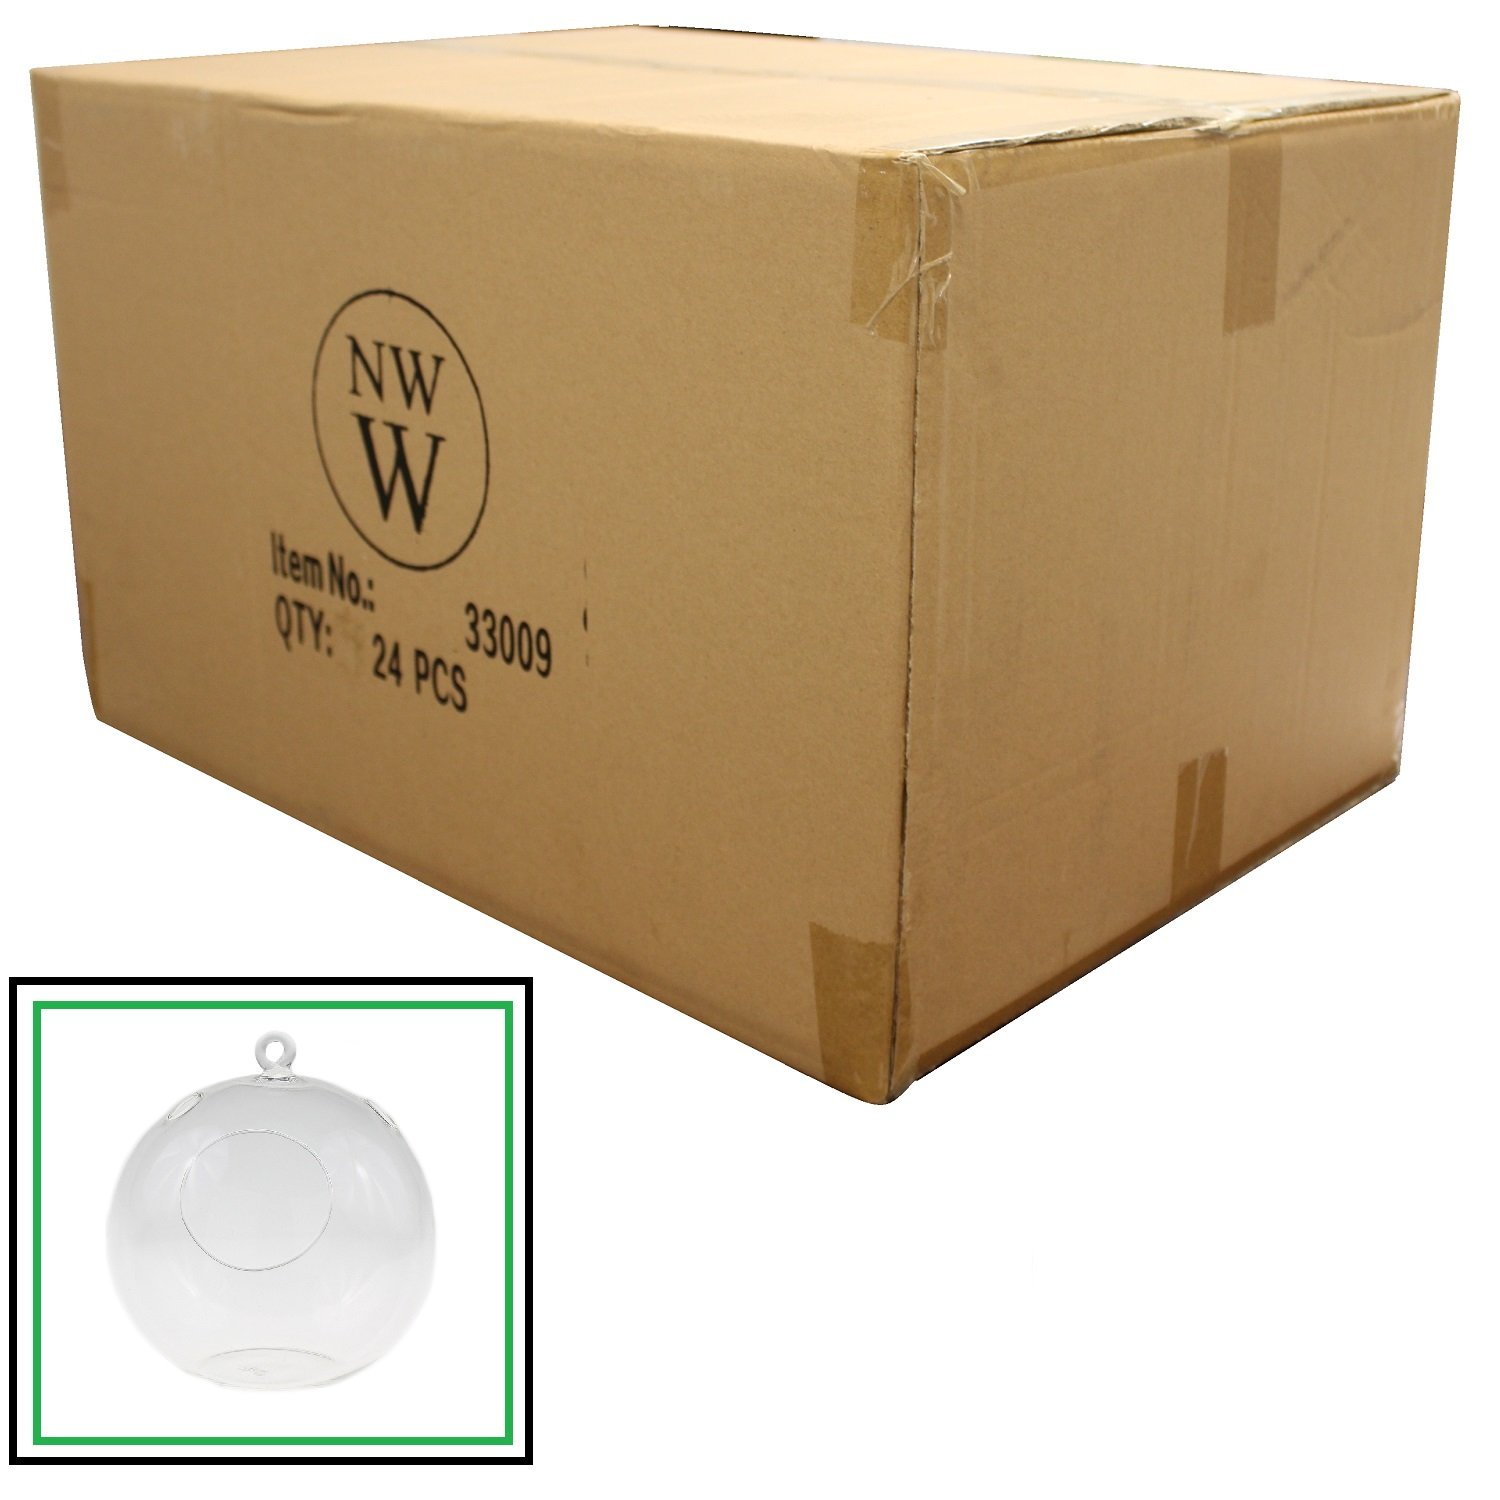 NW Wholesaler - Clear Blown Glass Terrarium - Case of 24 by NW Wholesaler